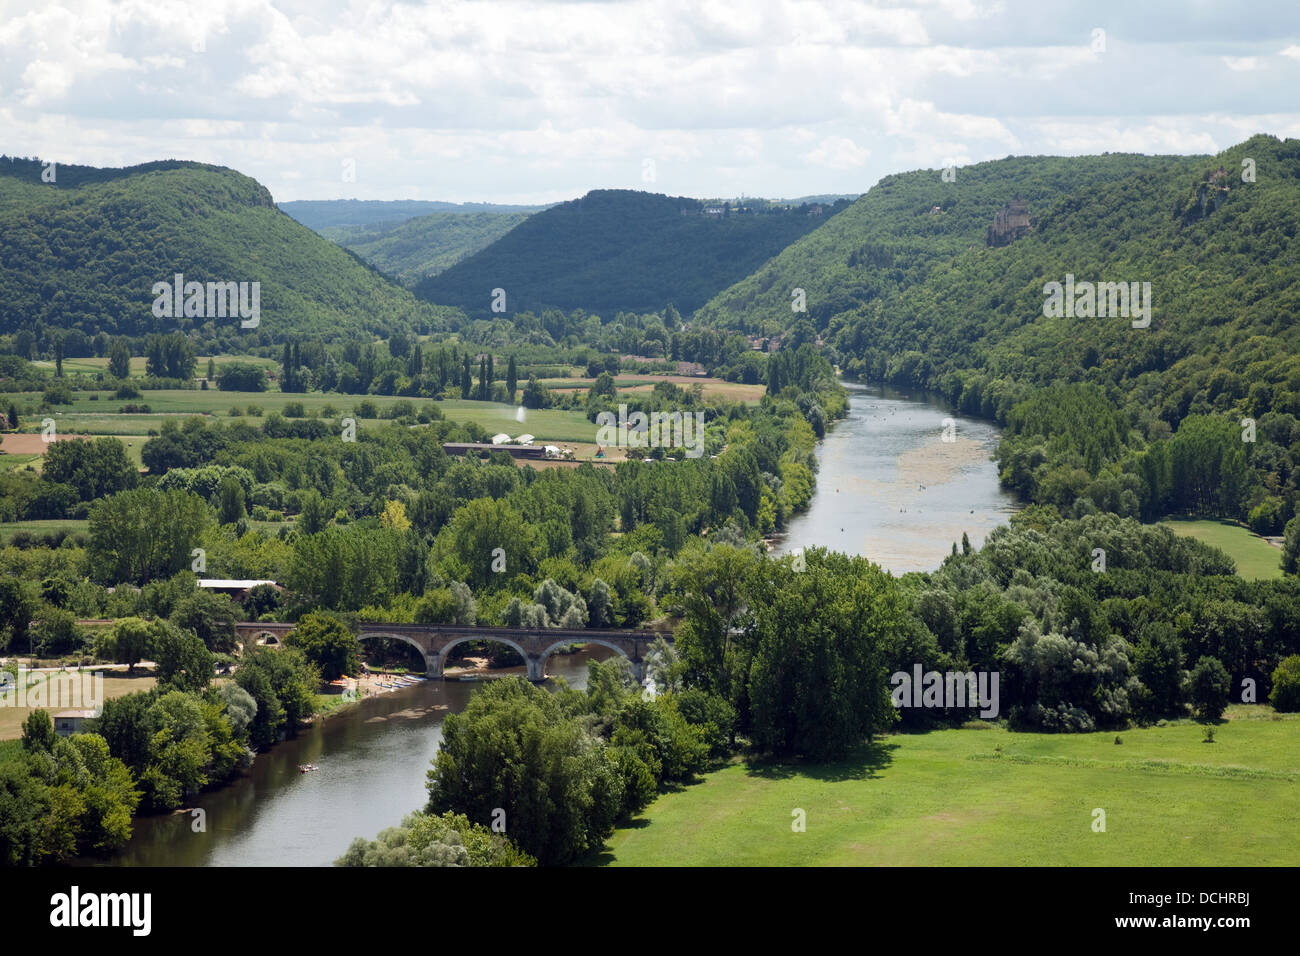 A view from above of the Dordogne river, from the Chateau at Beynac et Cazenac, Dordogne, France, Europe Stock Photo